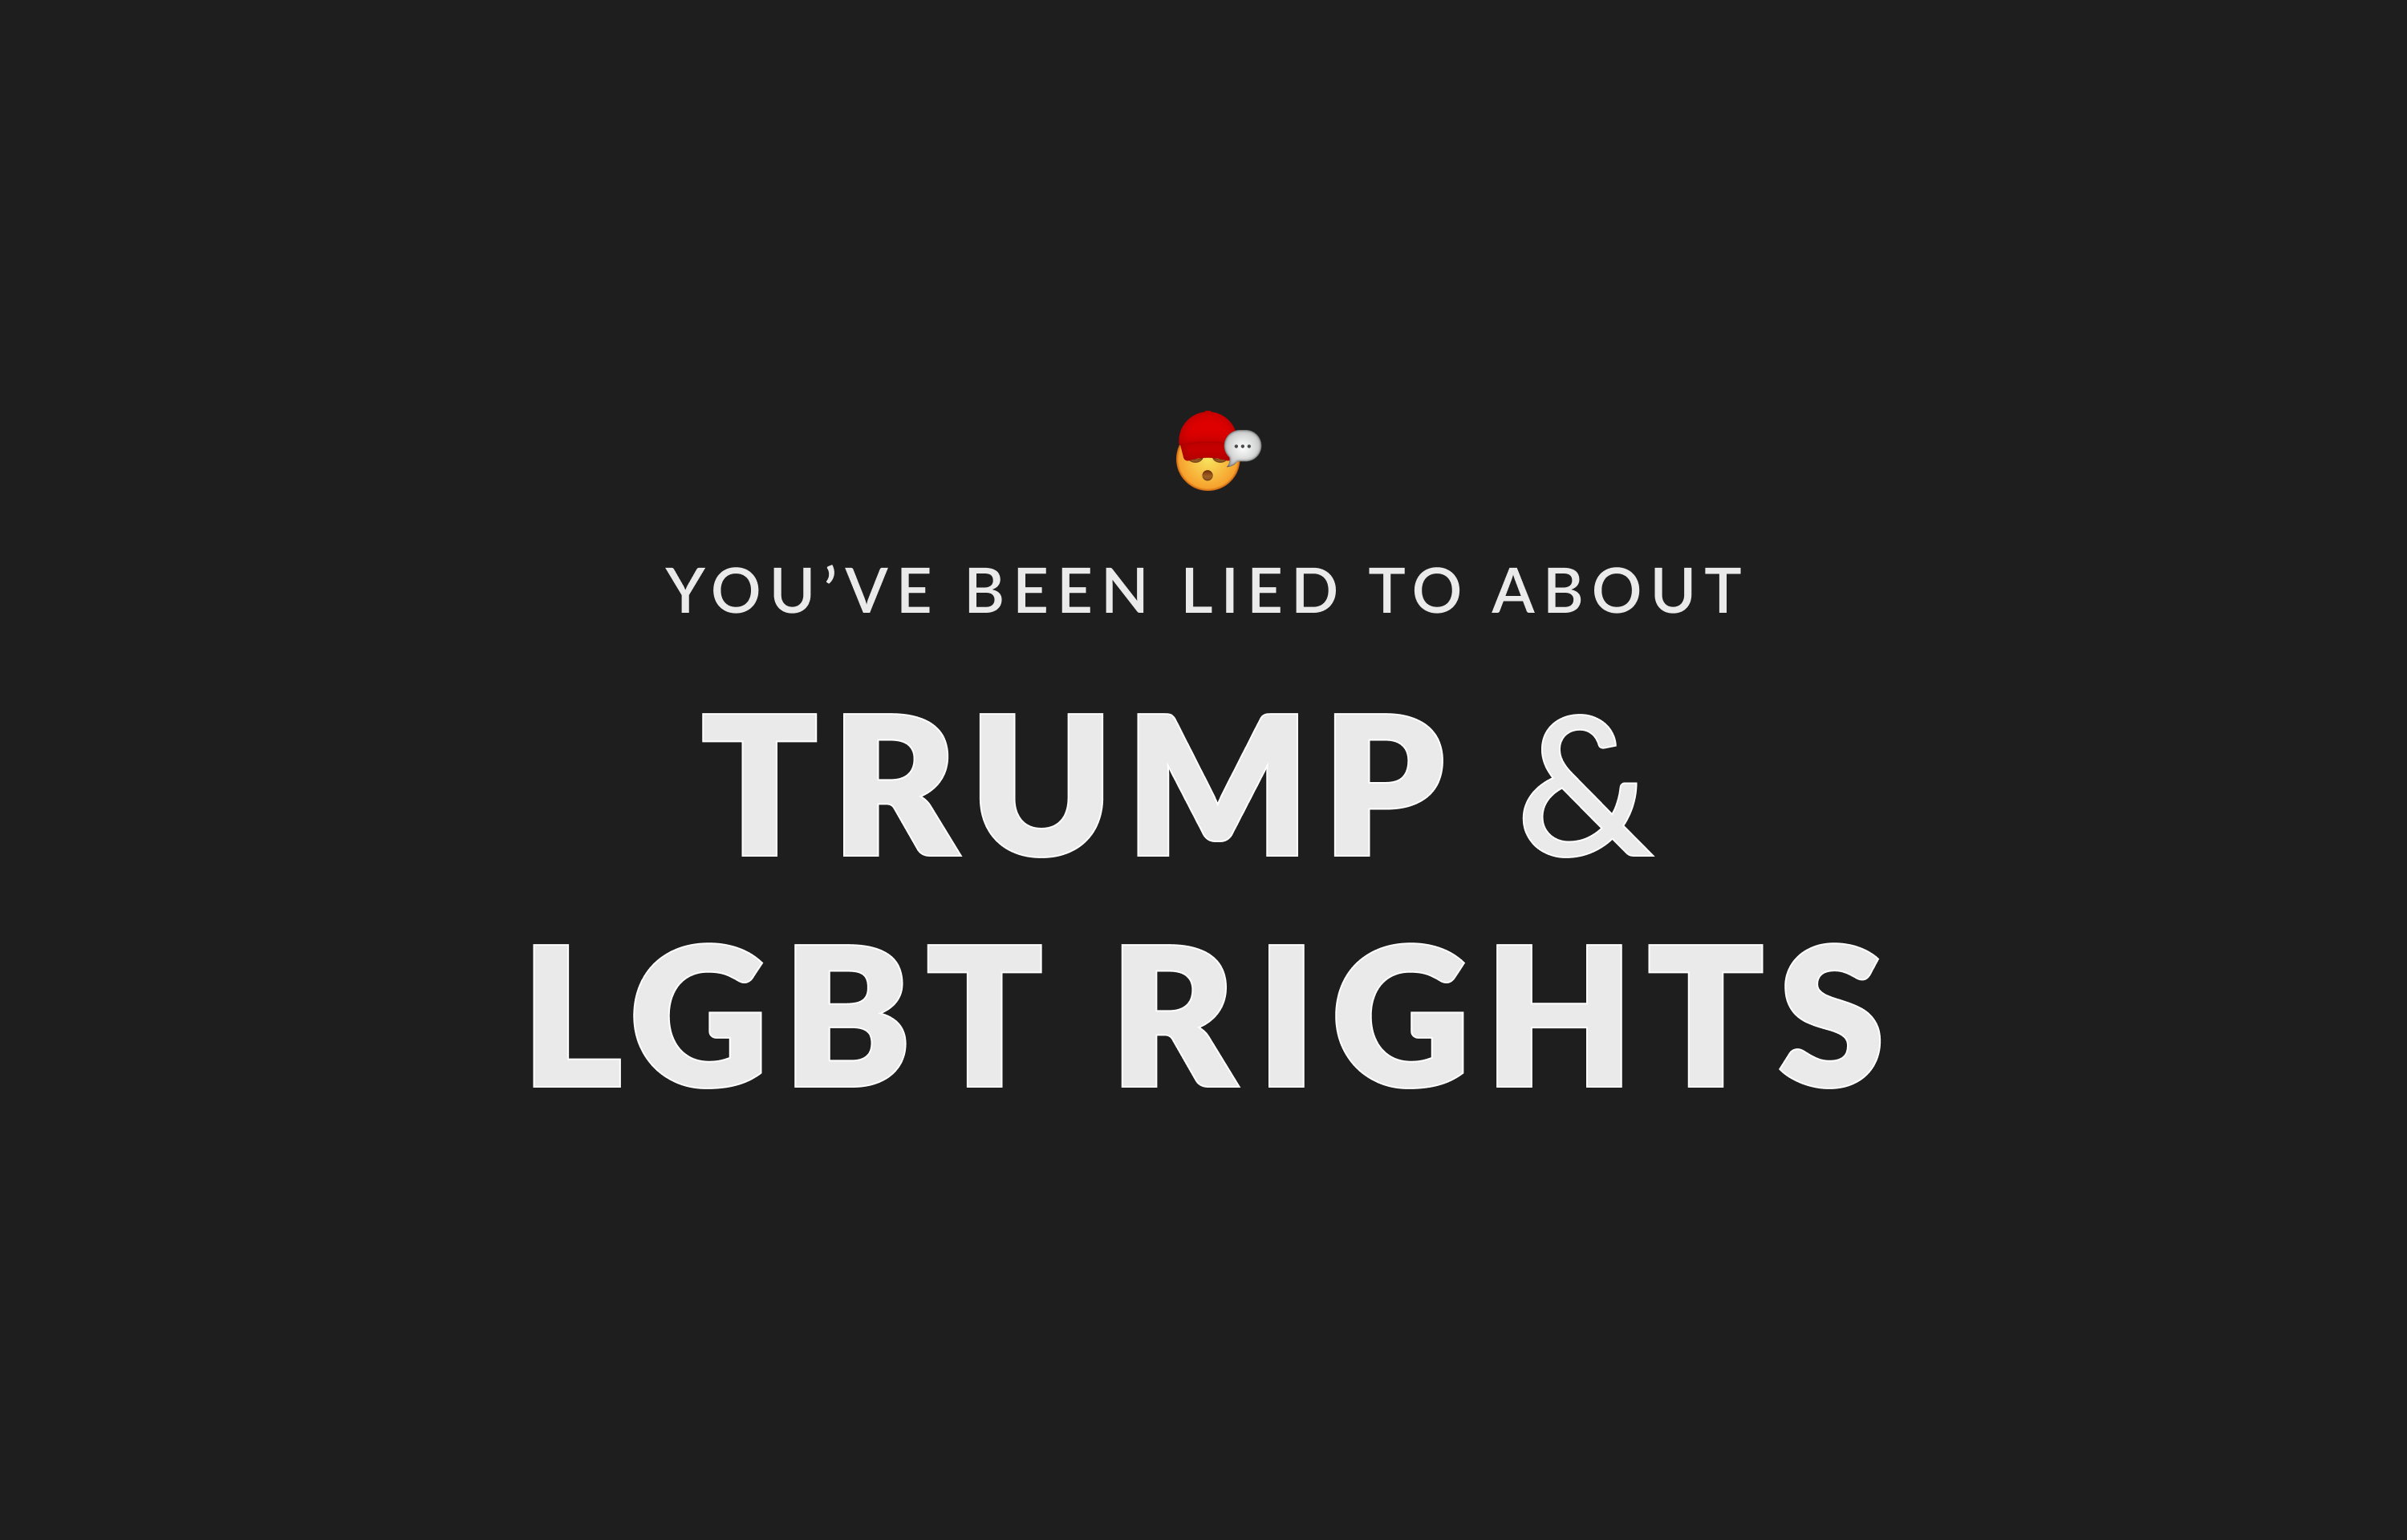 You've Been Lied To About Trump & Gay Rights